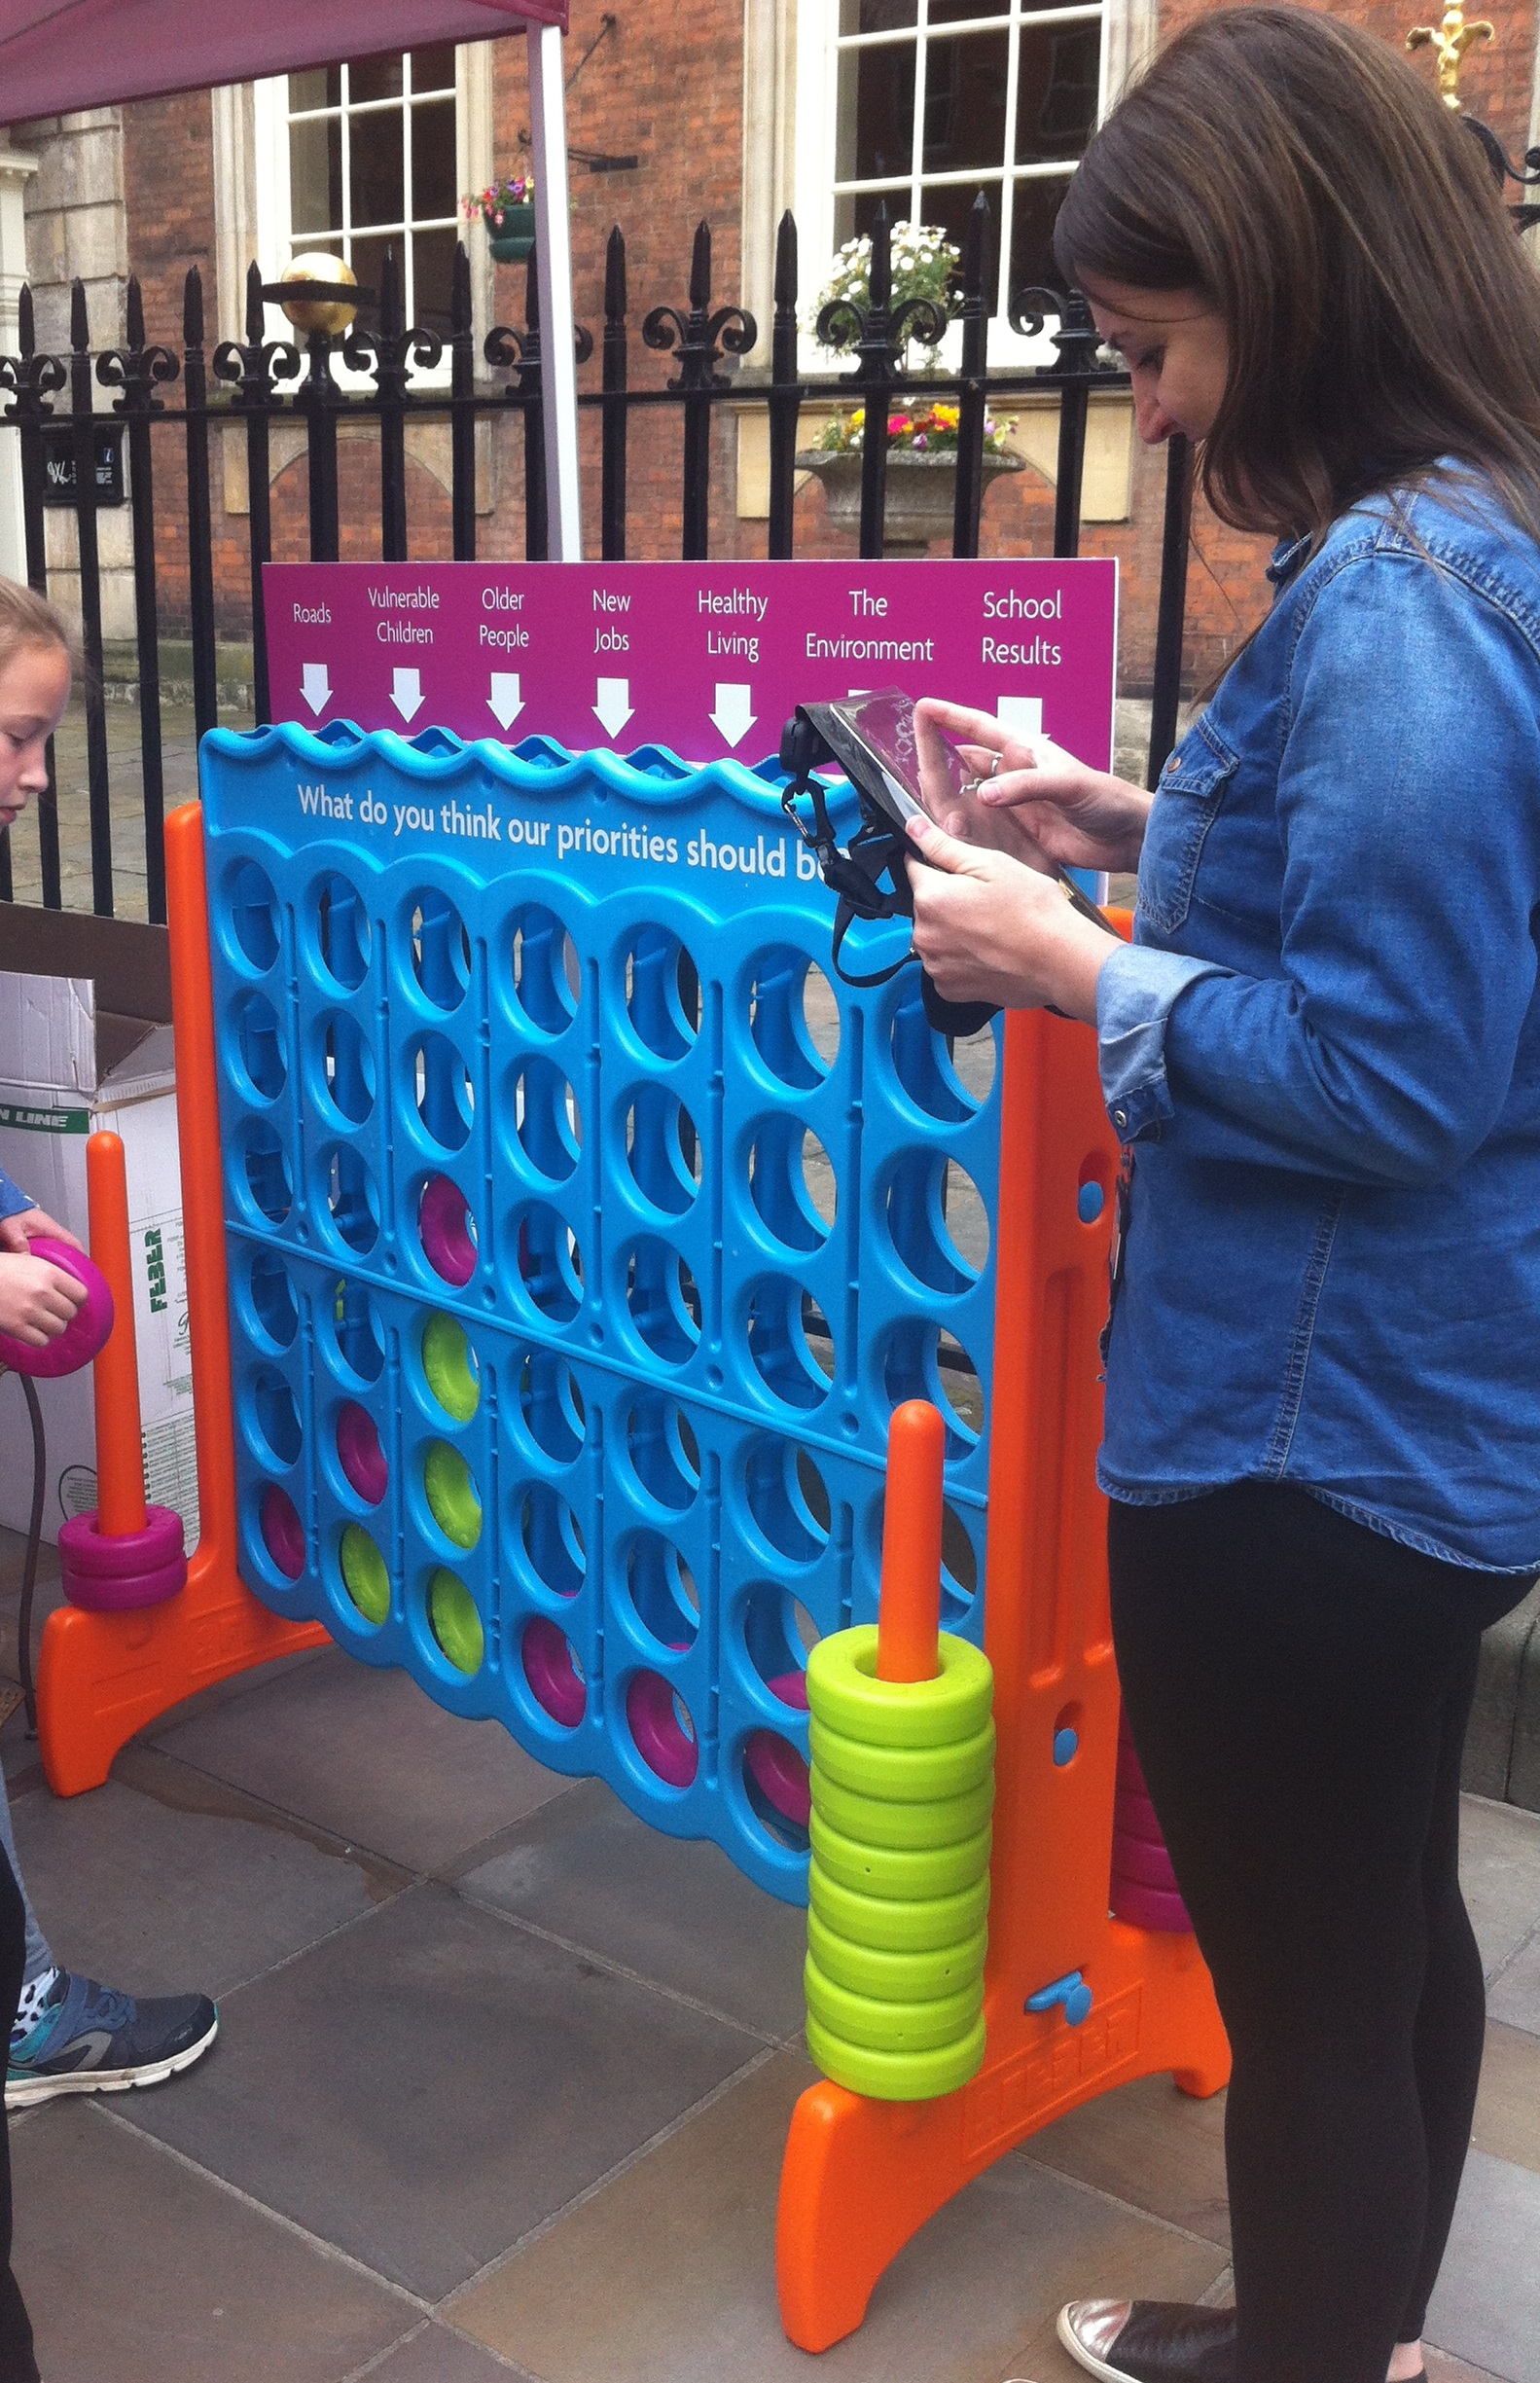 Have Your Say Roadshow Connect 4 activity